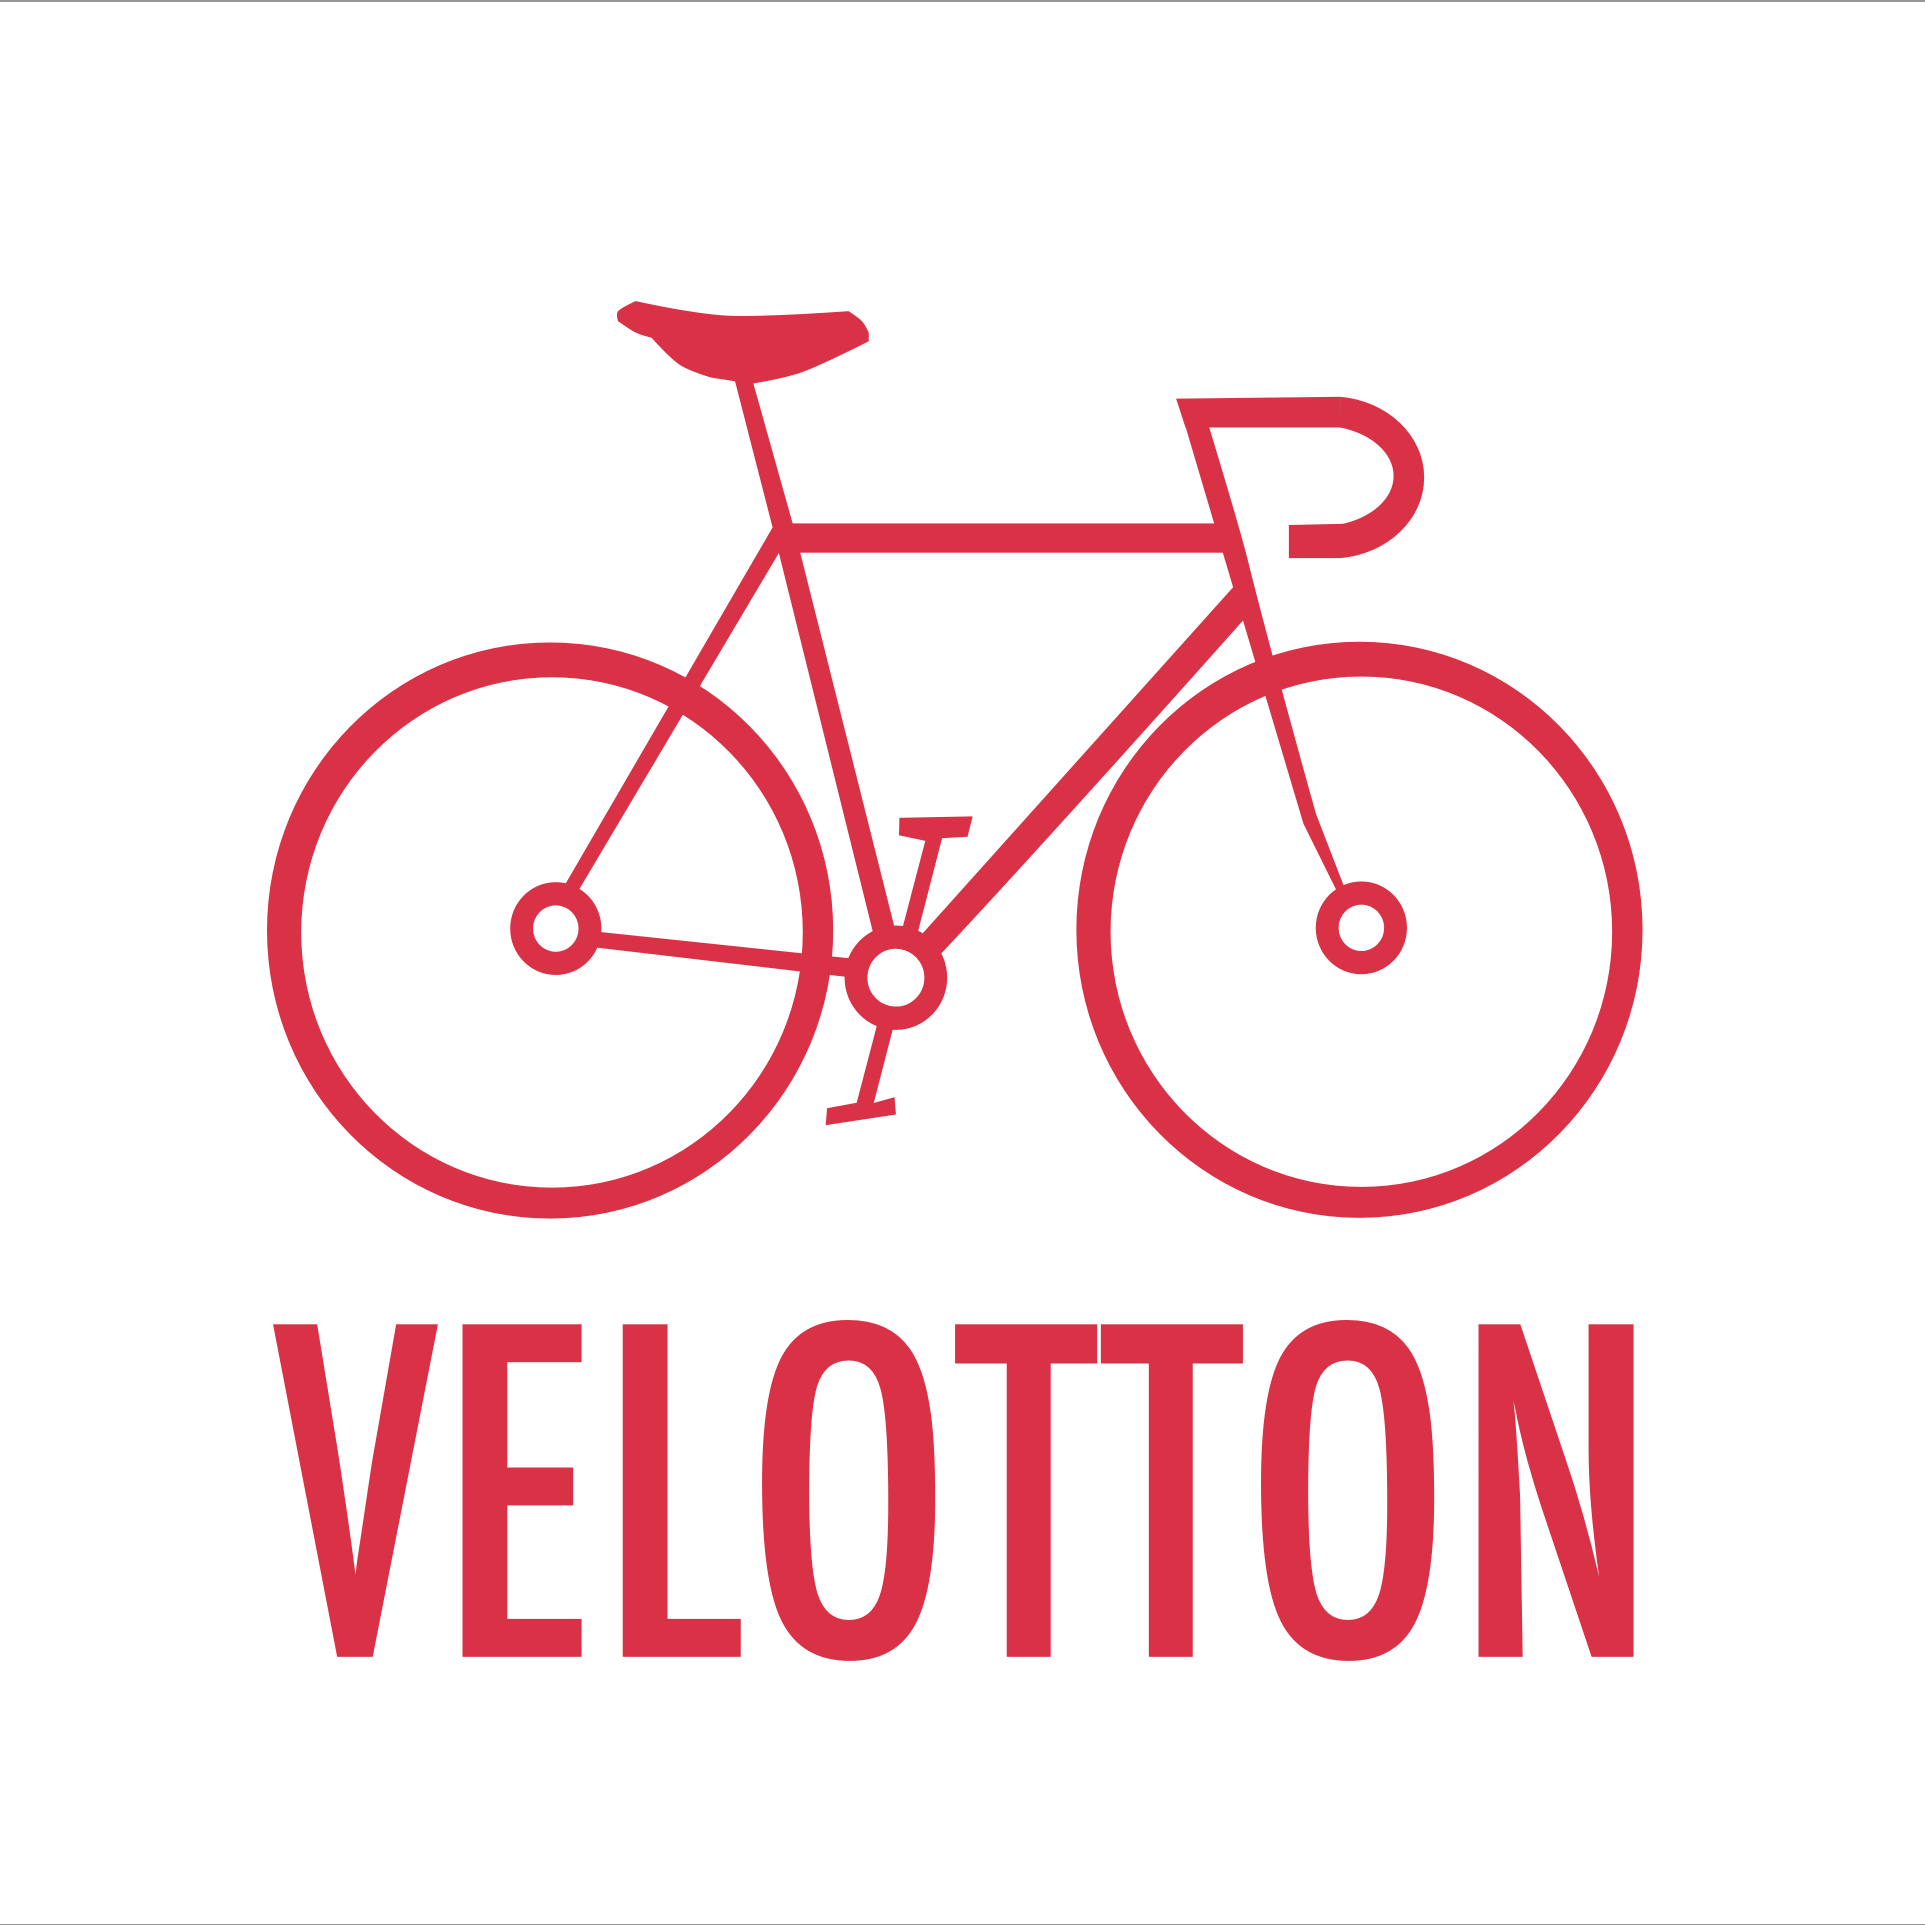 Velotton Cycling